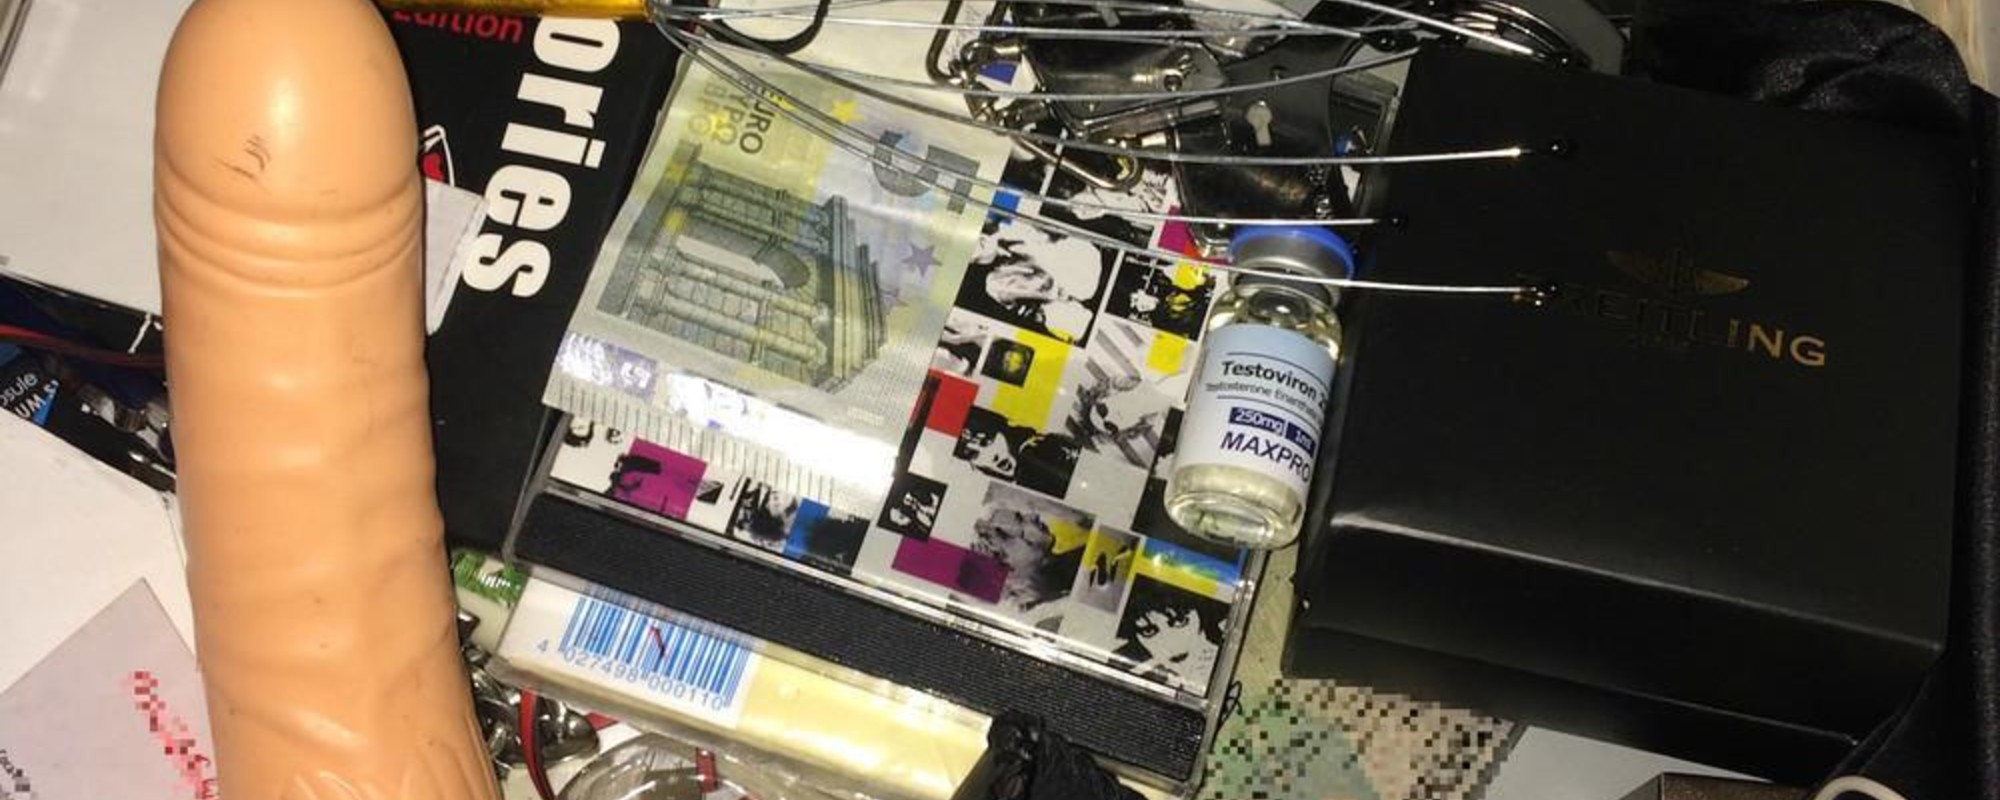 Buttplugs, Vials of Ketamine and Other Things VICE Readers Keep In Their Bedside Drawers